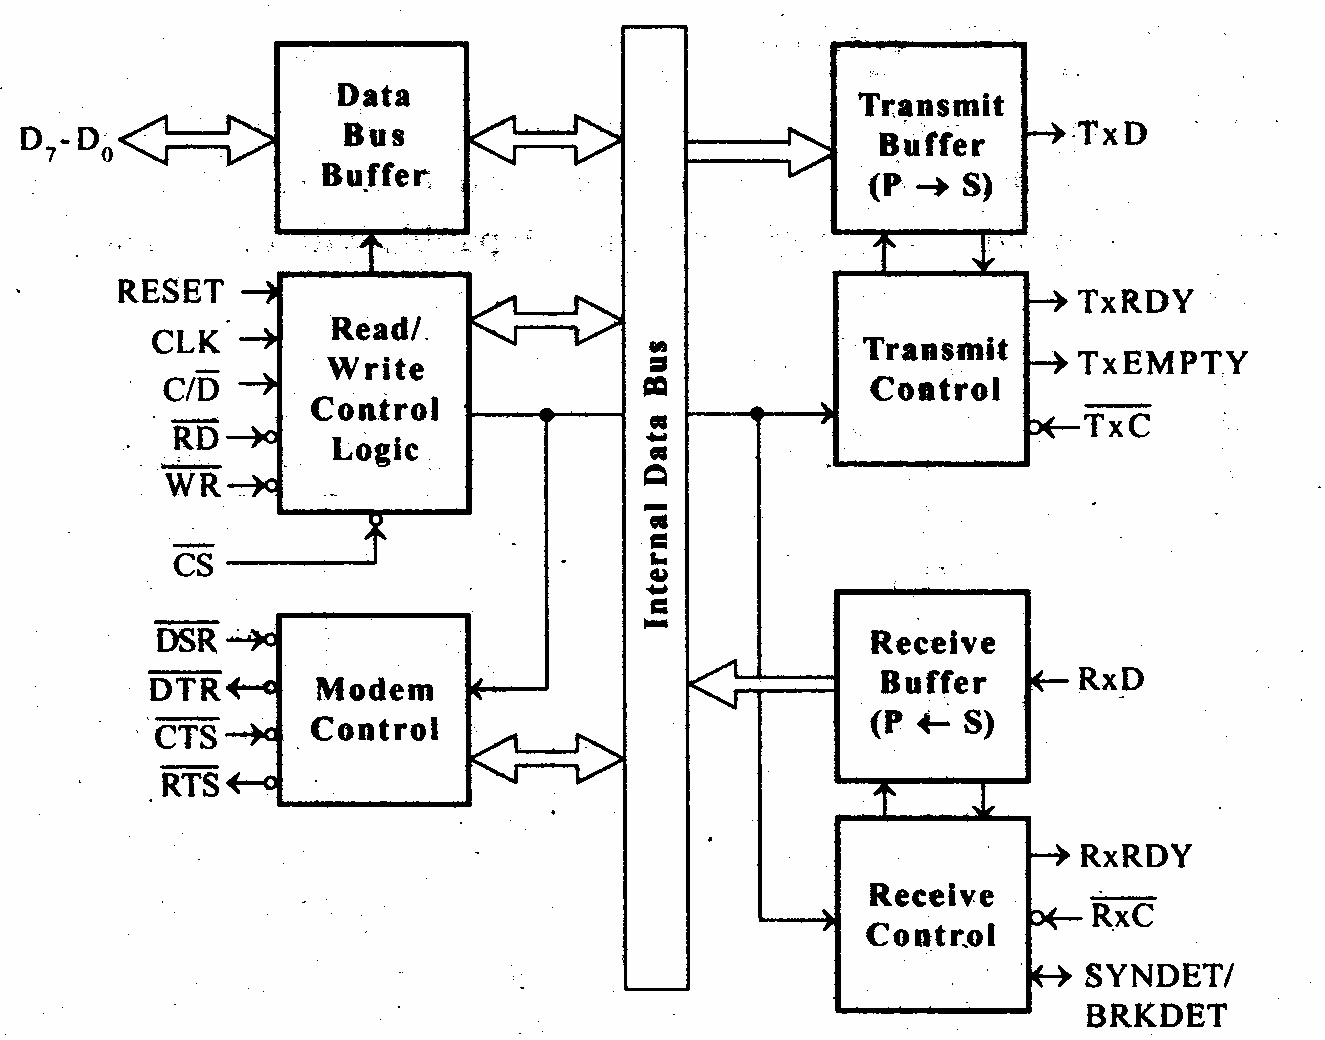 Functional block diagrams simple workflow software ms project microprocessor on 8086 microprocessor architecture diagram untitled inside microprocessor on 8086html functional block diagrams functional block diagrams pooptronica Images